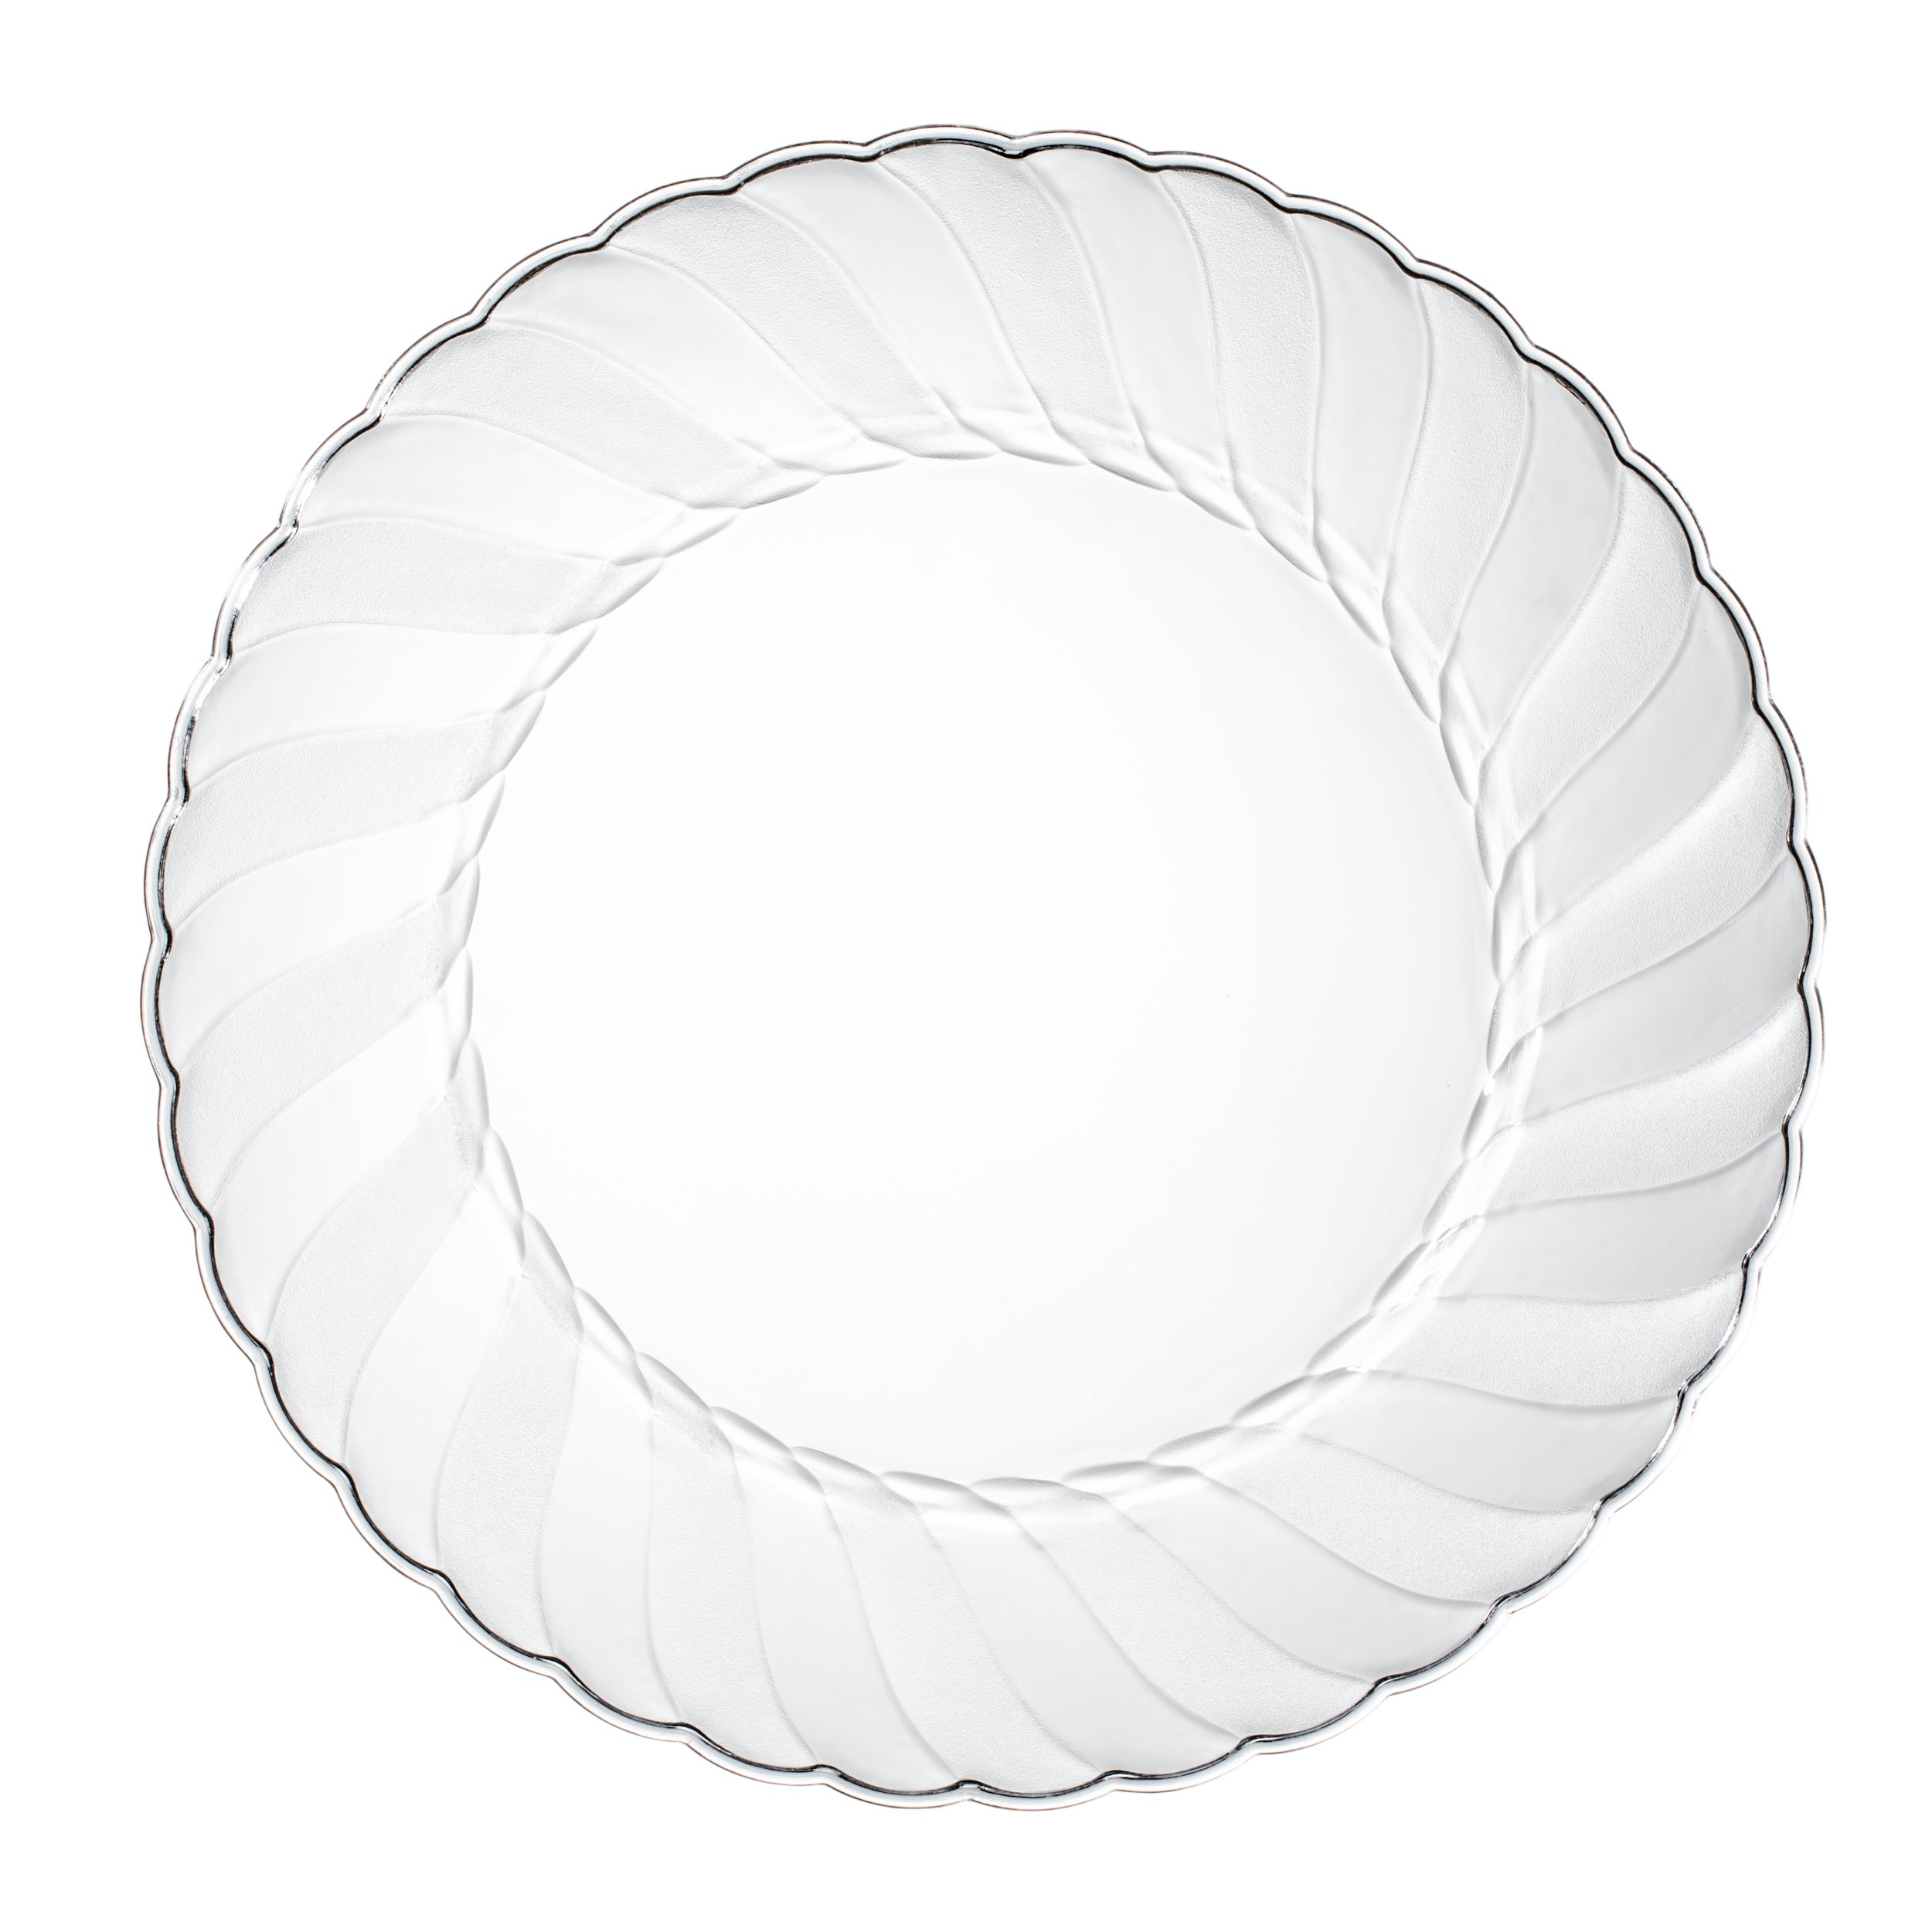 Premium Clear Plastic Plates By Alpha & Sigma - 100pcs 9'' Food Grade Clear Plastic Plates - Washable & Reusable - Perfect For Birthdays, Parties, Celebrations, Picnics, Buffets, Catering & More by Alpha & Sigma